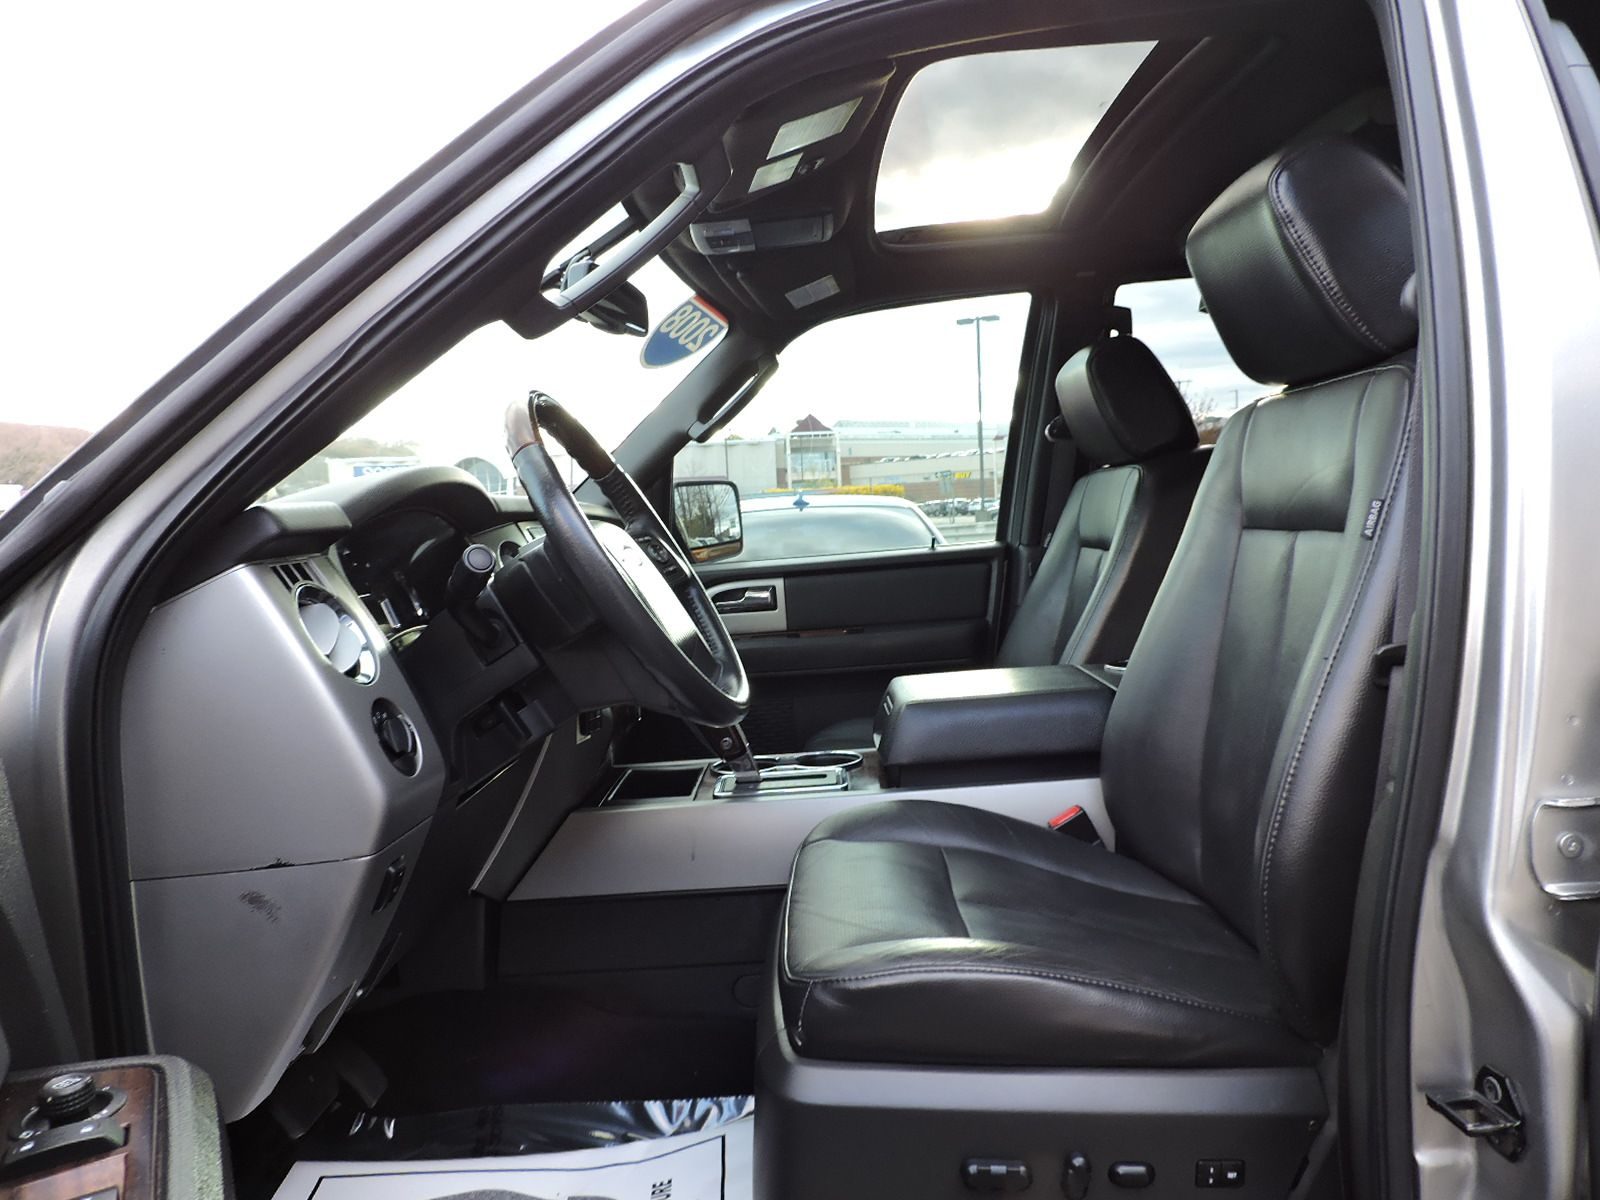 2008 Ford Expedition Limited AWD